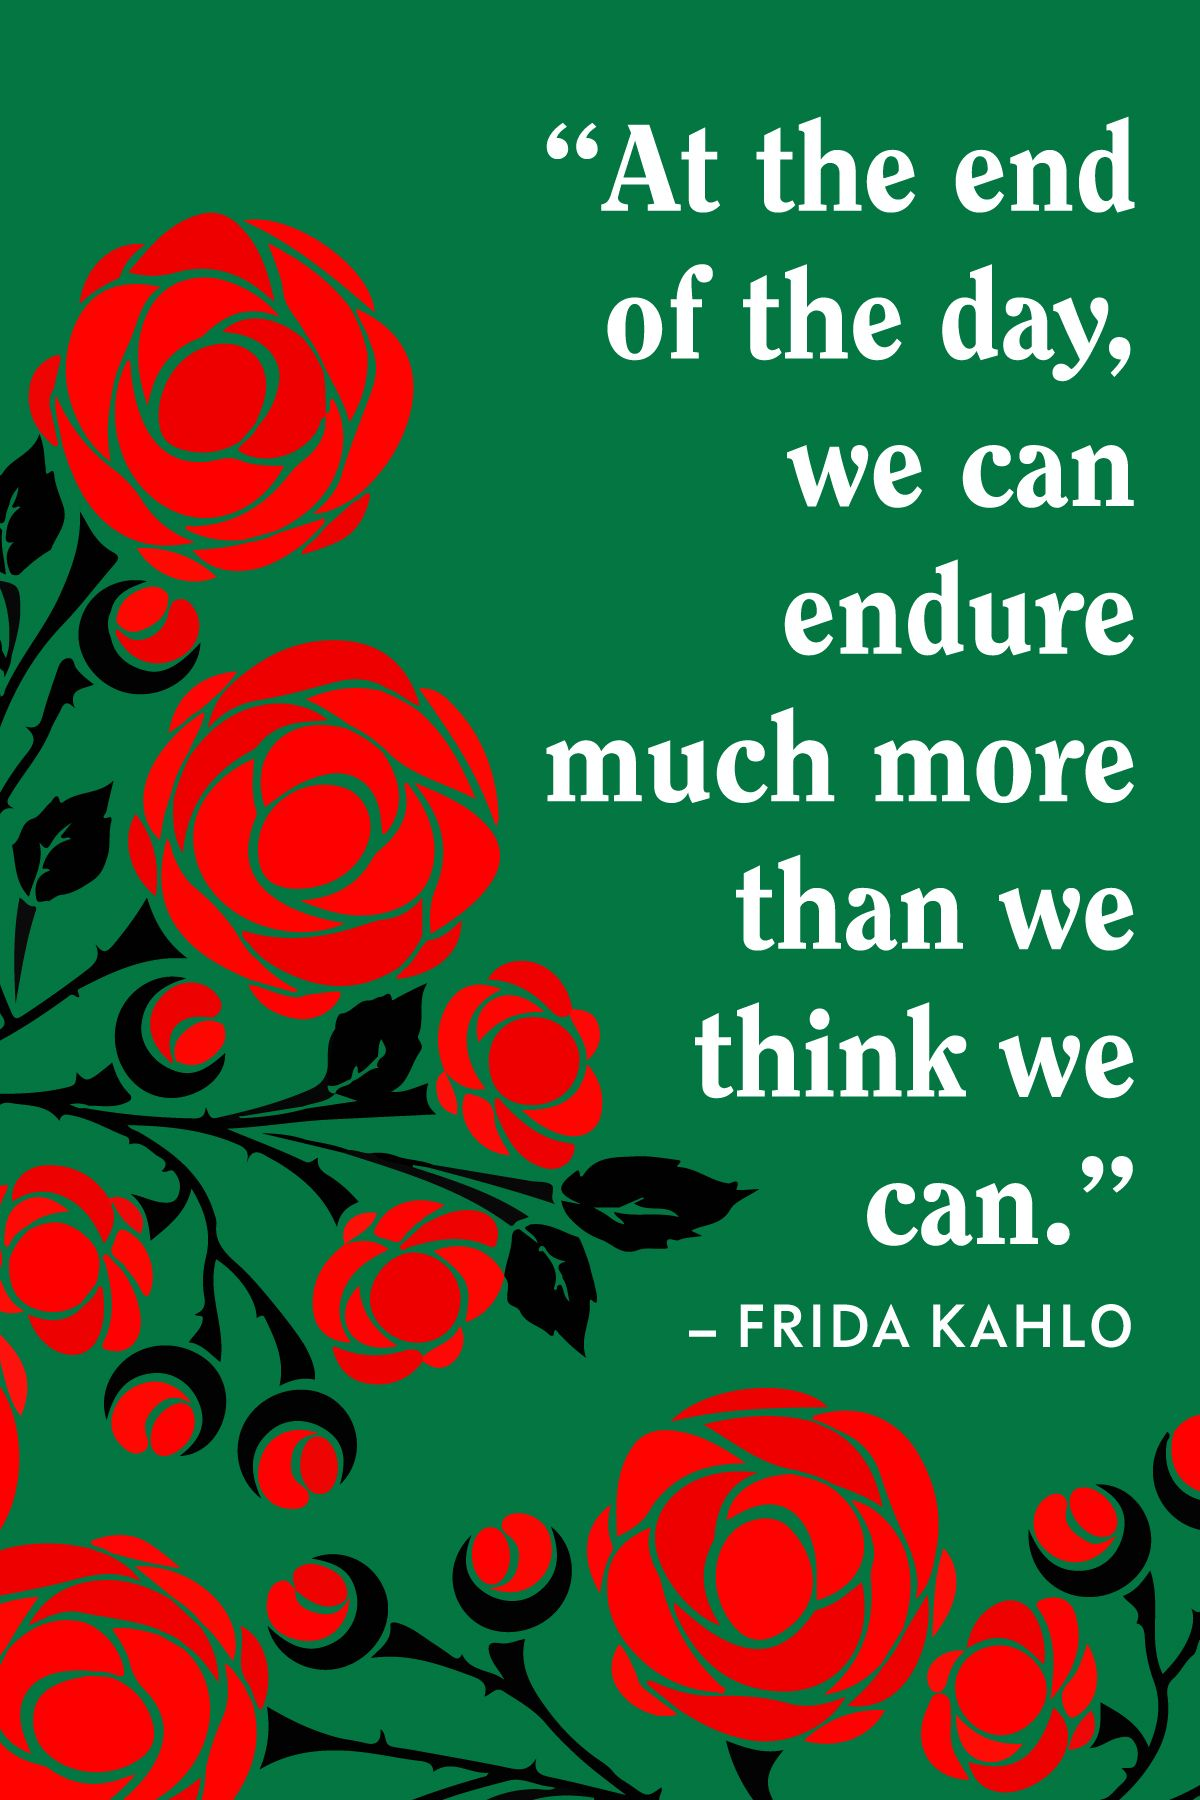 20 Frida Kahlo Quotes — Famous Frida Kahlo Quotes